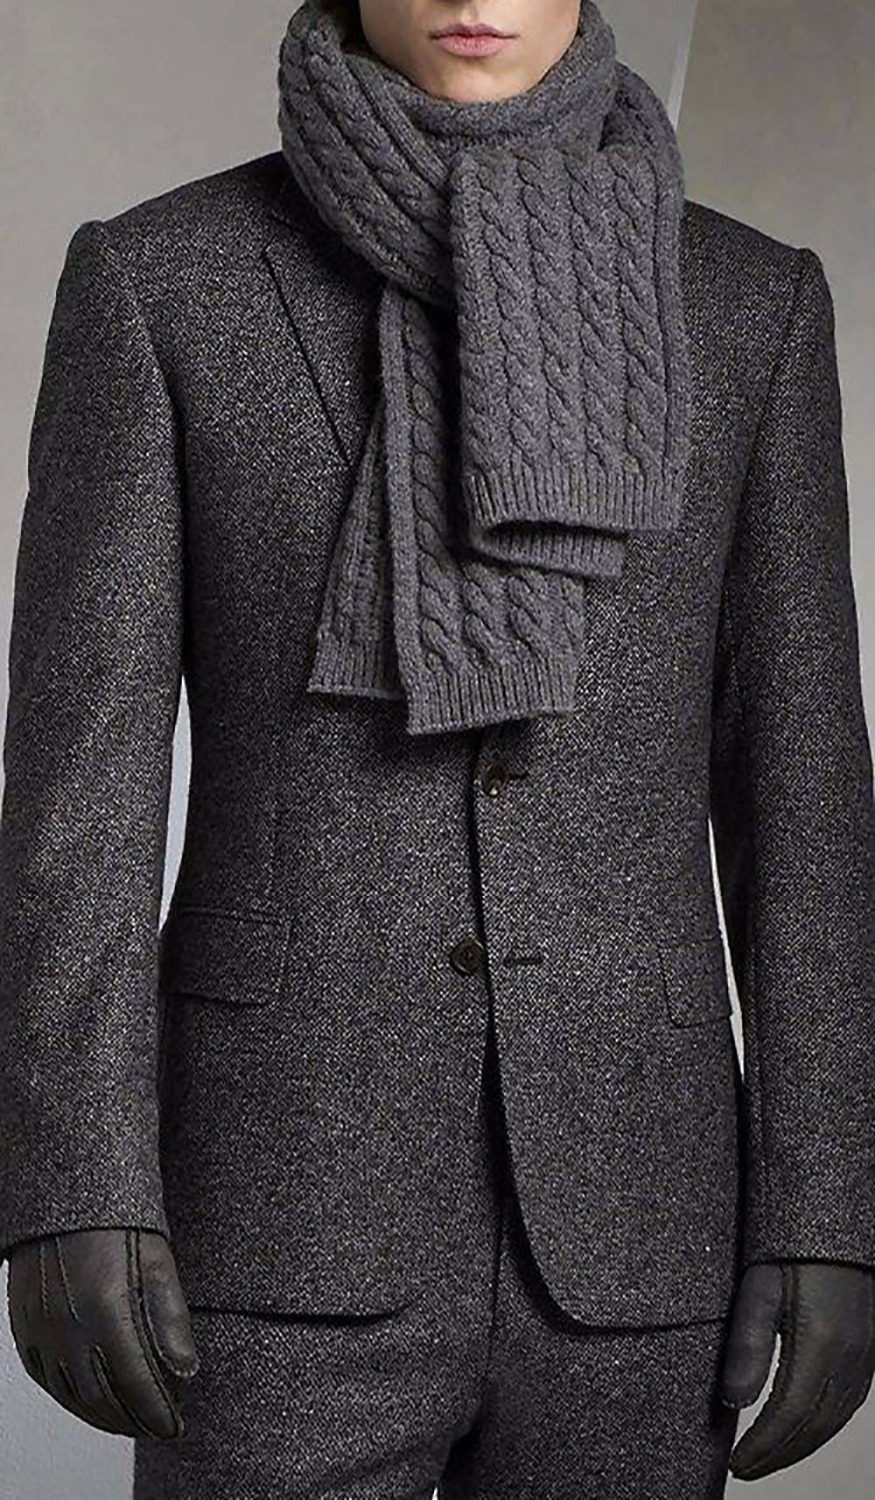 Charcoal Grey Brushed Wool Blend Suits For Winter Tailored Fit Warm Suits For WinterCustom Made